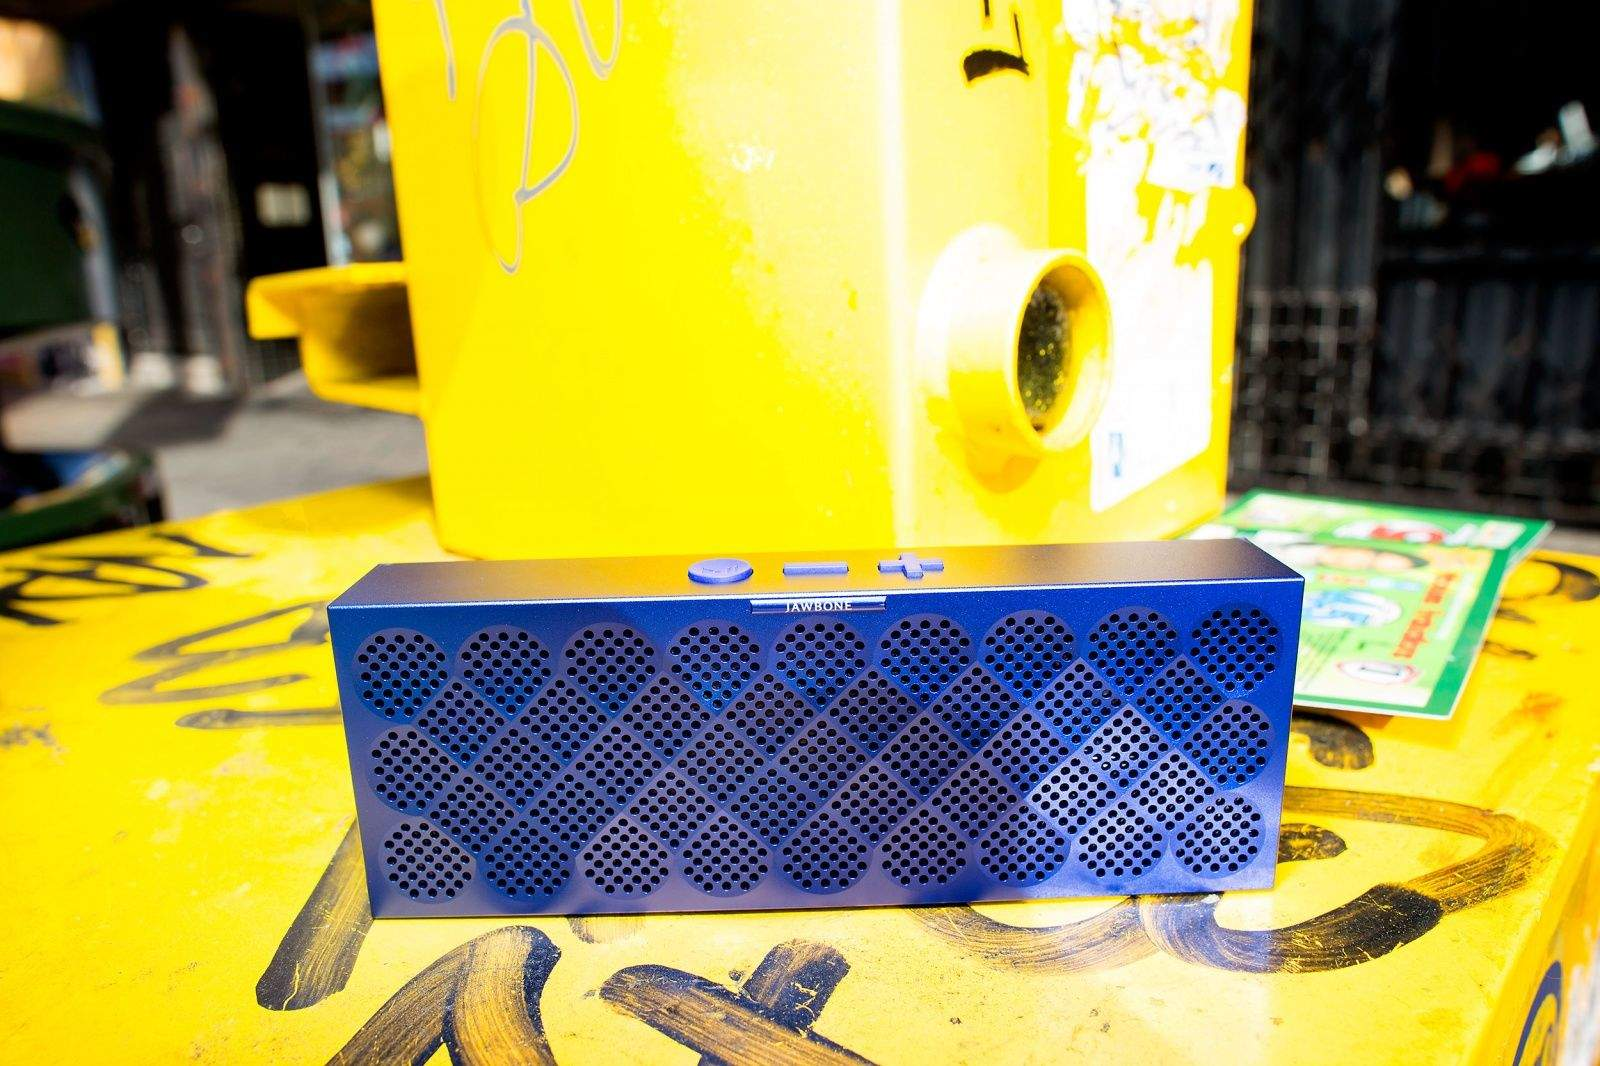 Mini Jambox pumps out the jams. Photo: Jim Merithew/Cult of Mac